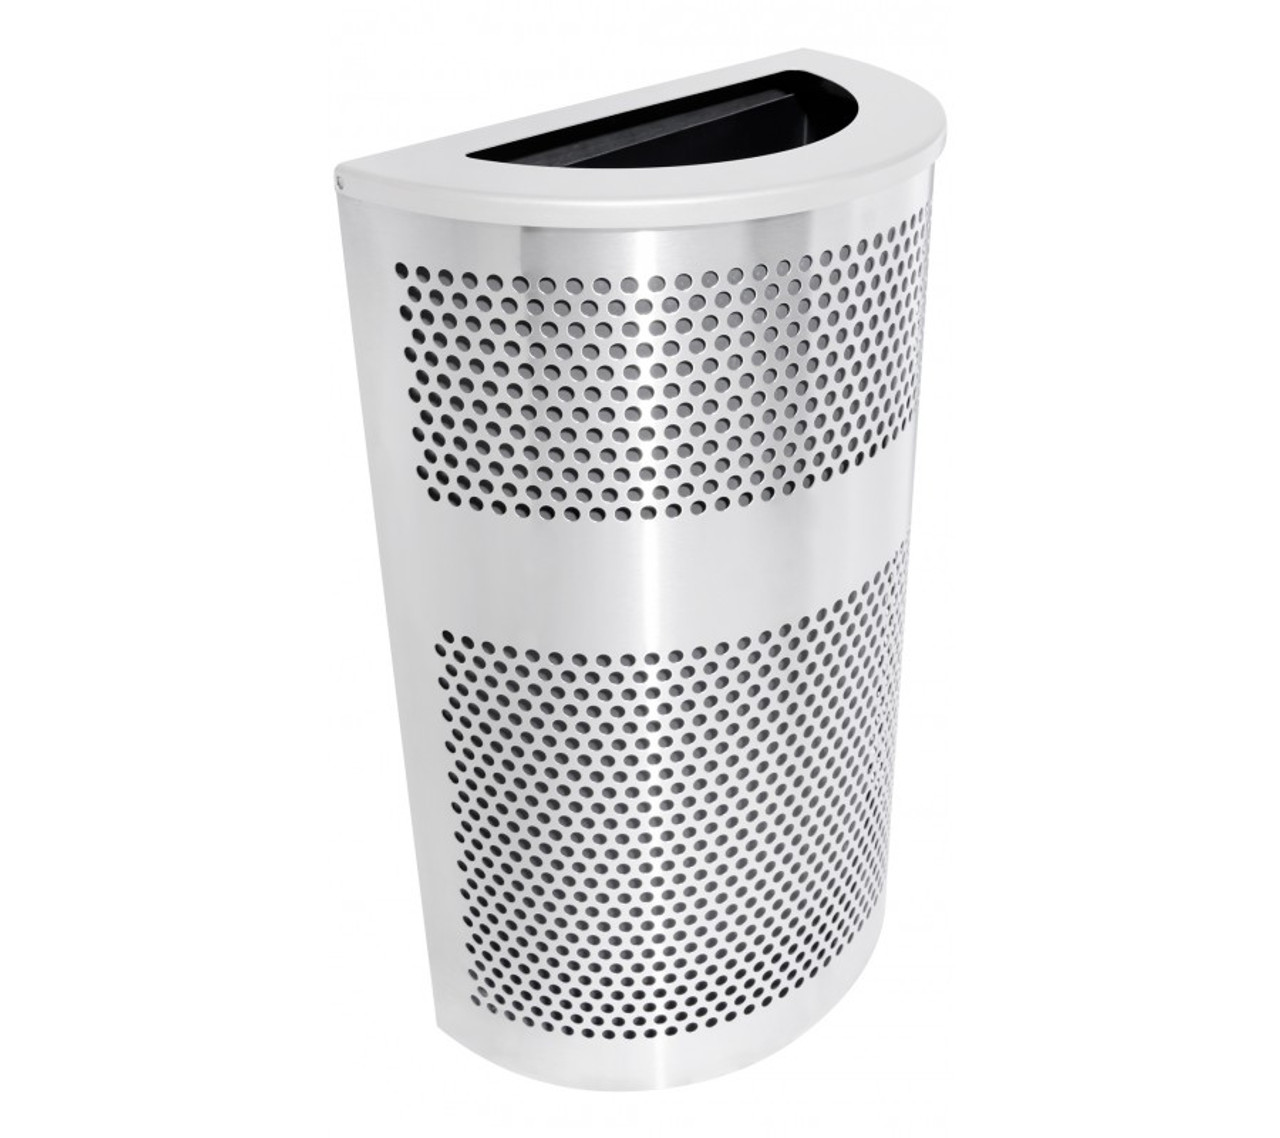 20 Gallon Perforated Half Round Stainless Steel Trash Can VC2234 HR SS/PLTNM